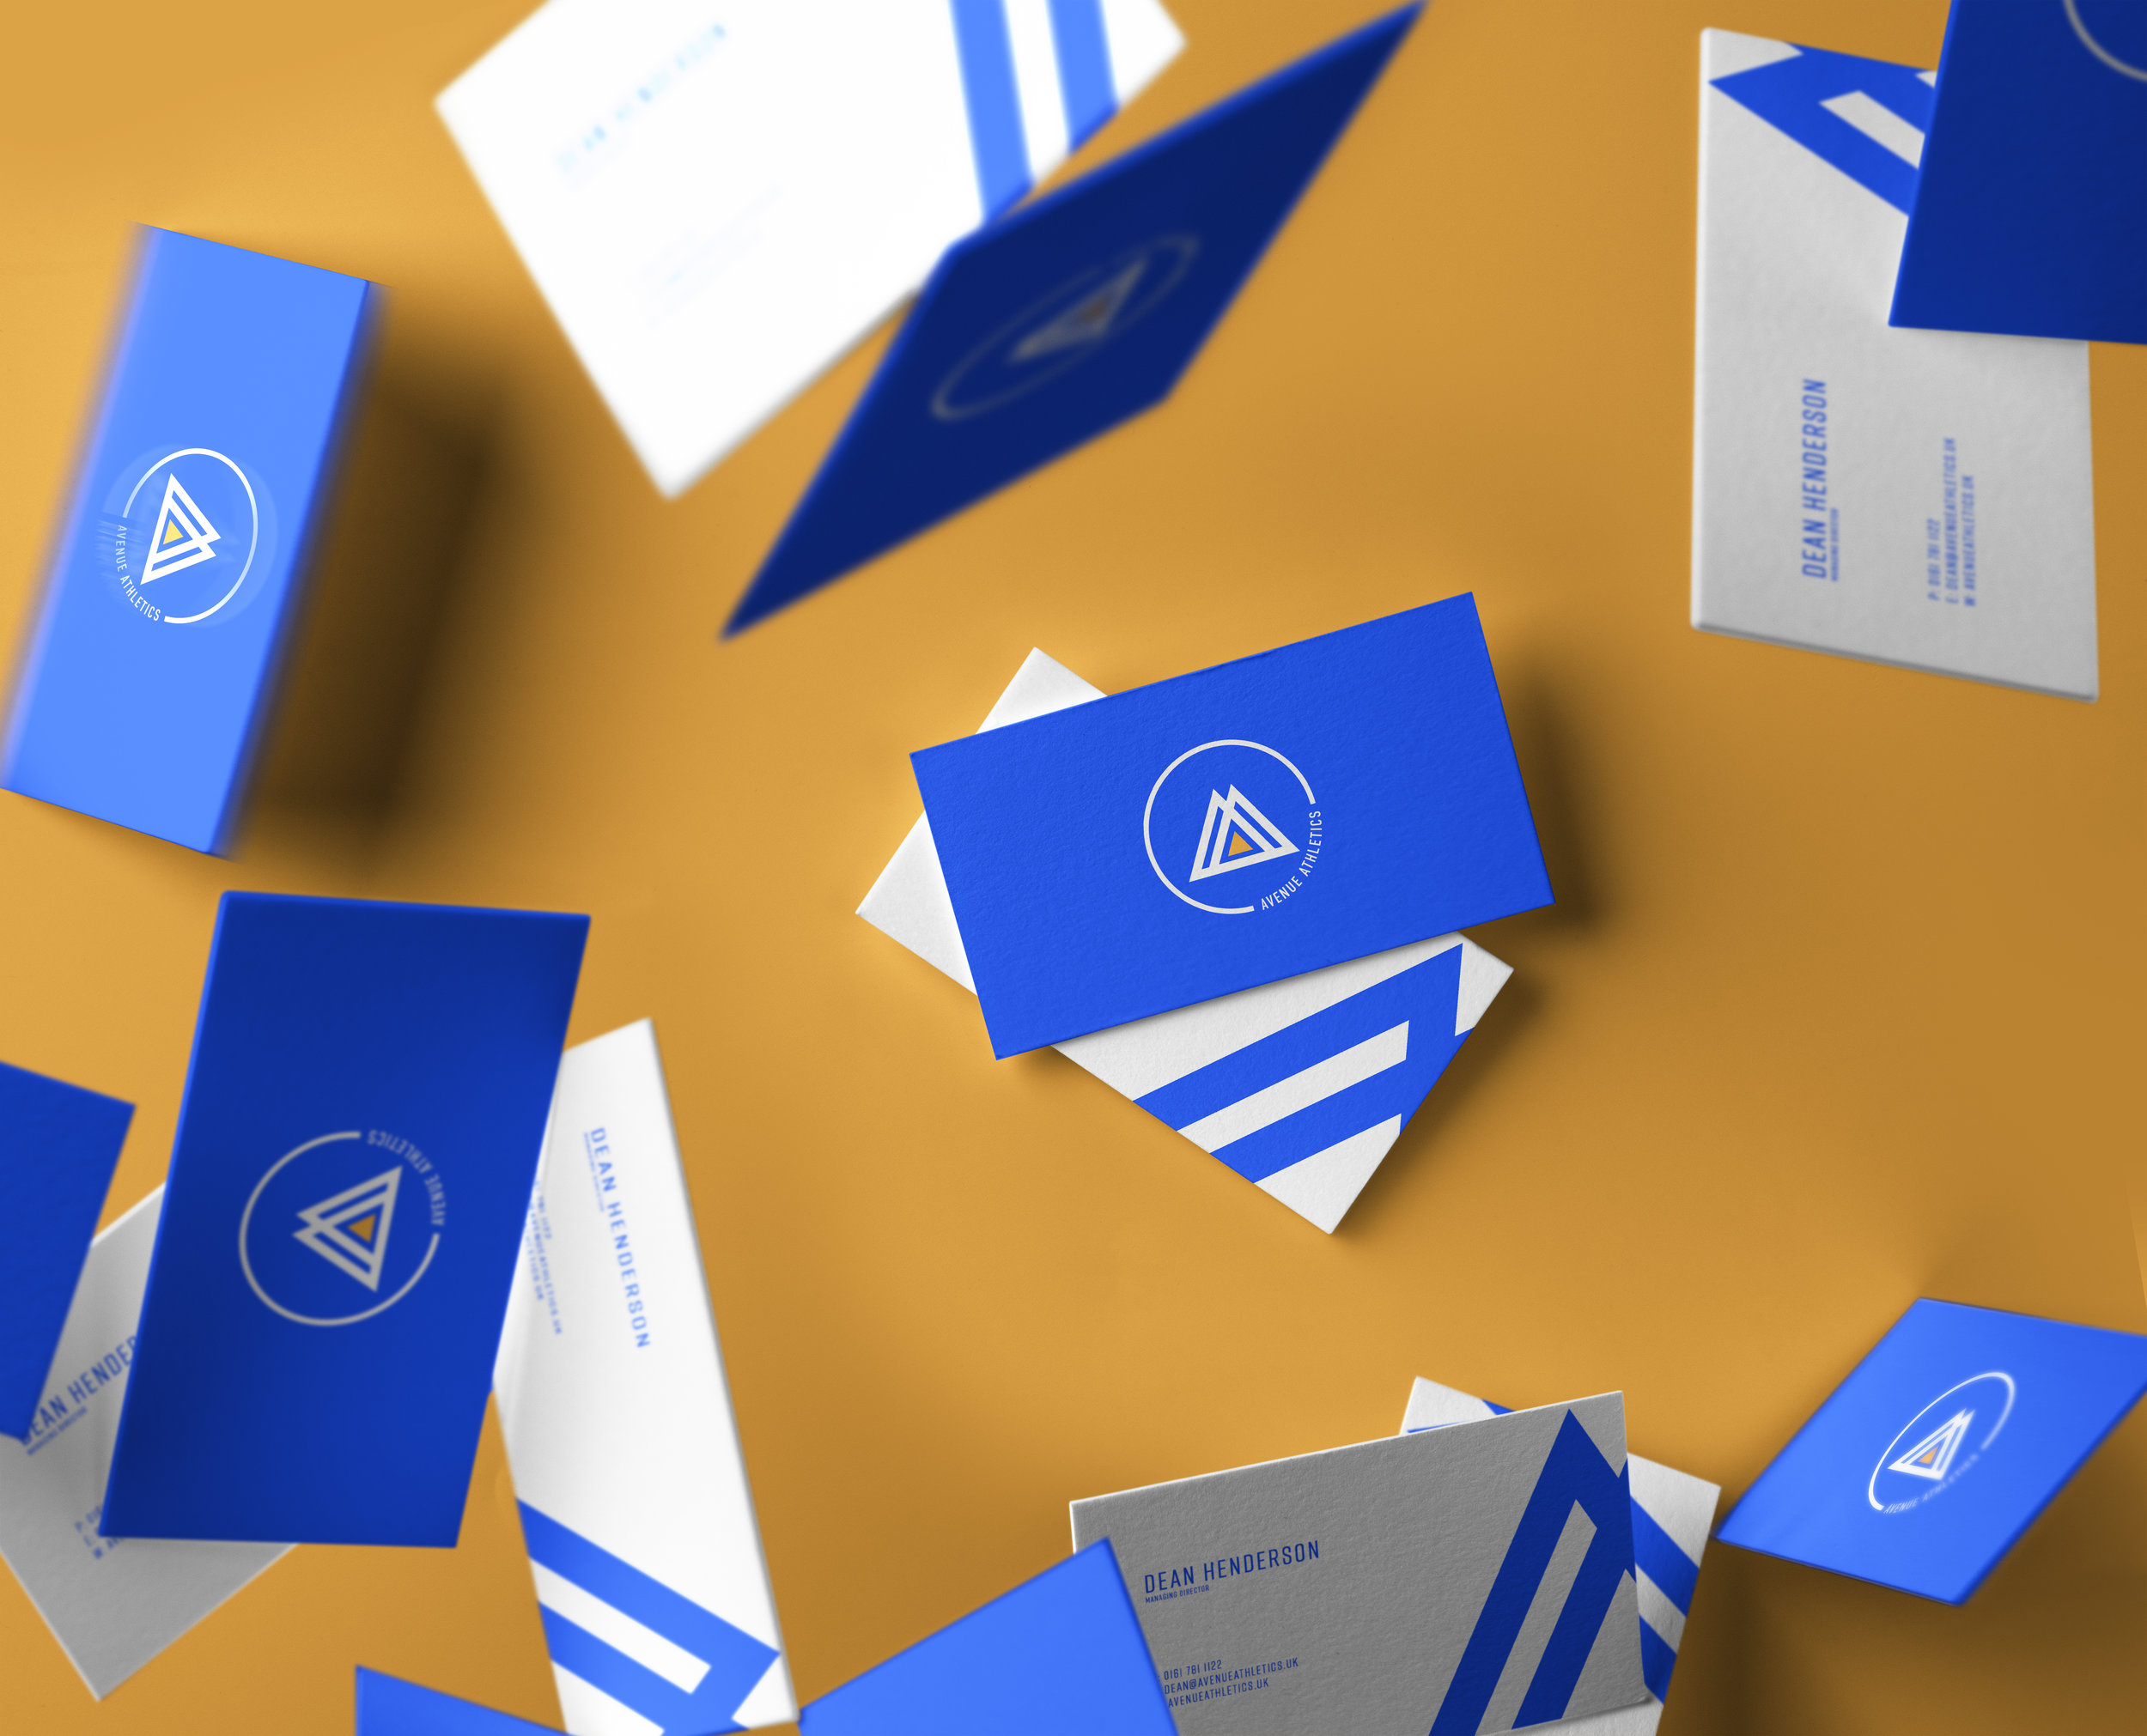 Falling-Business-Card-Mockup-Vol3-AA.jpg